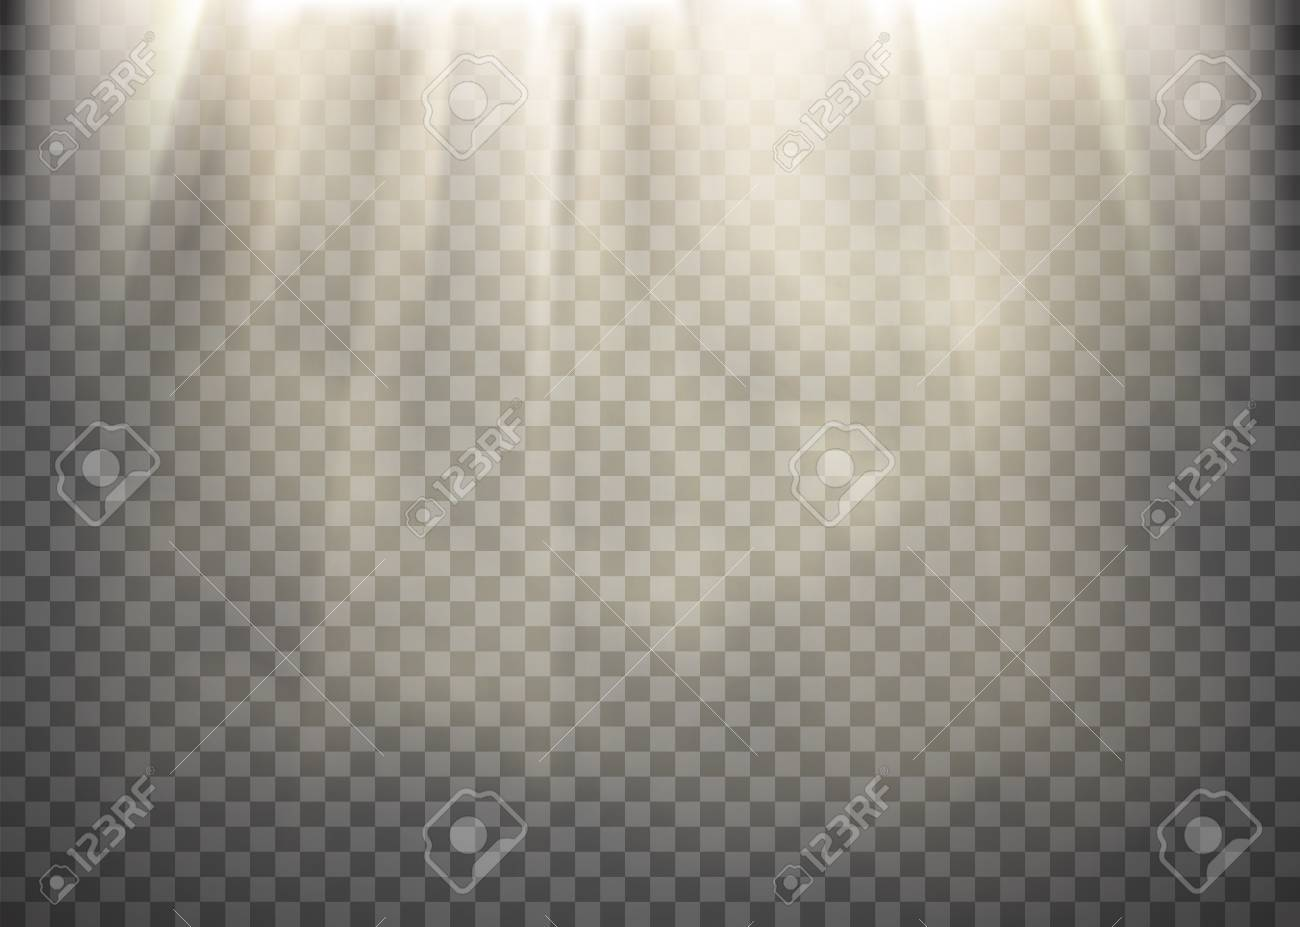 Light Rays Transparent - Sunlight On A Transparent Background. Light Rays Pattern. Stock ...